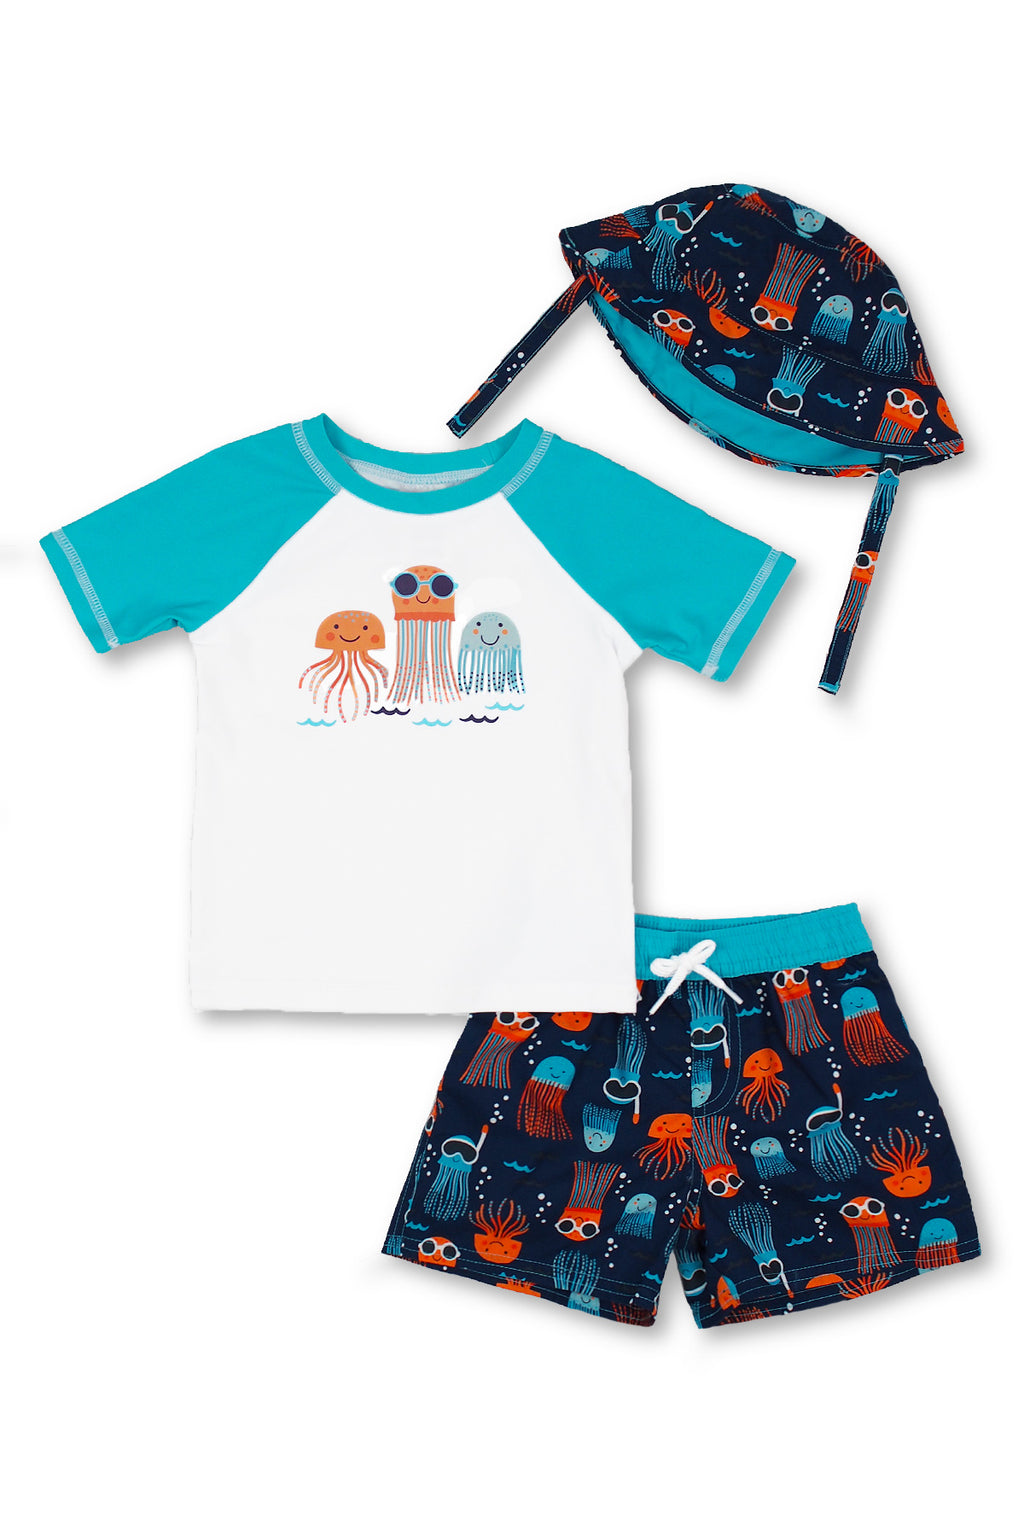 Boys Jellyfish Short Sleeve Rash Guard & Swim Trunks With Bucket Hat 3pc Set, Turq